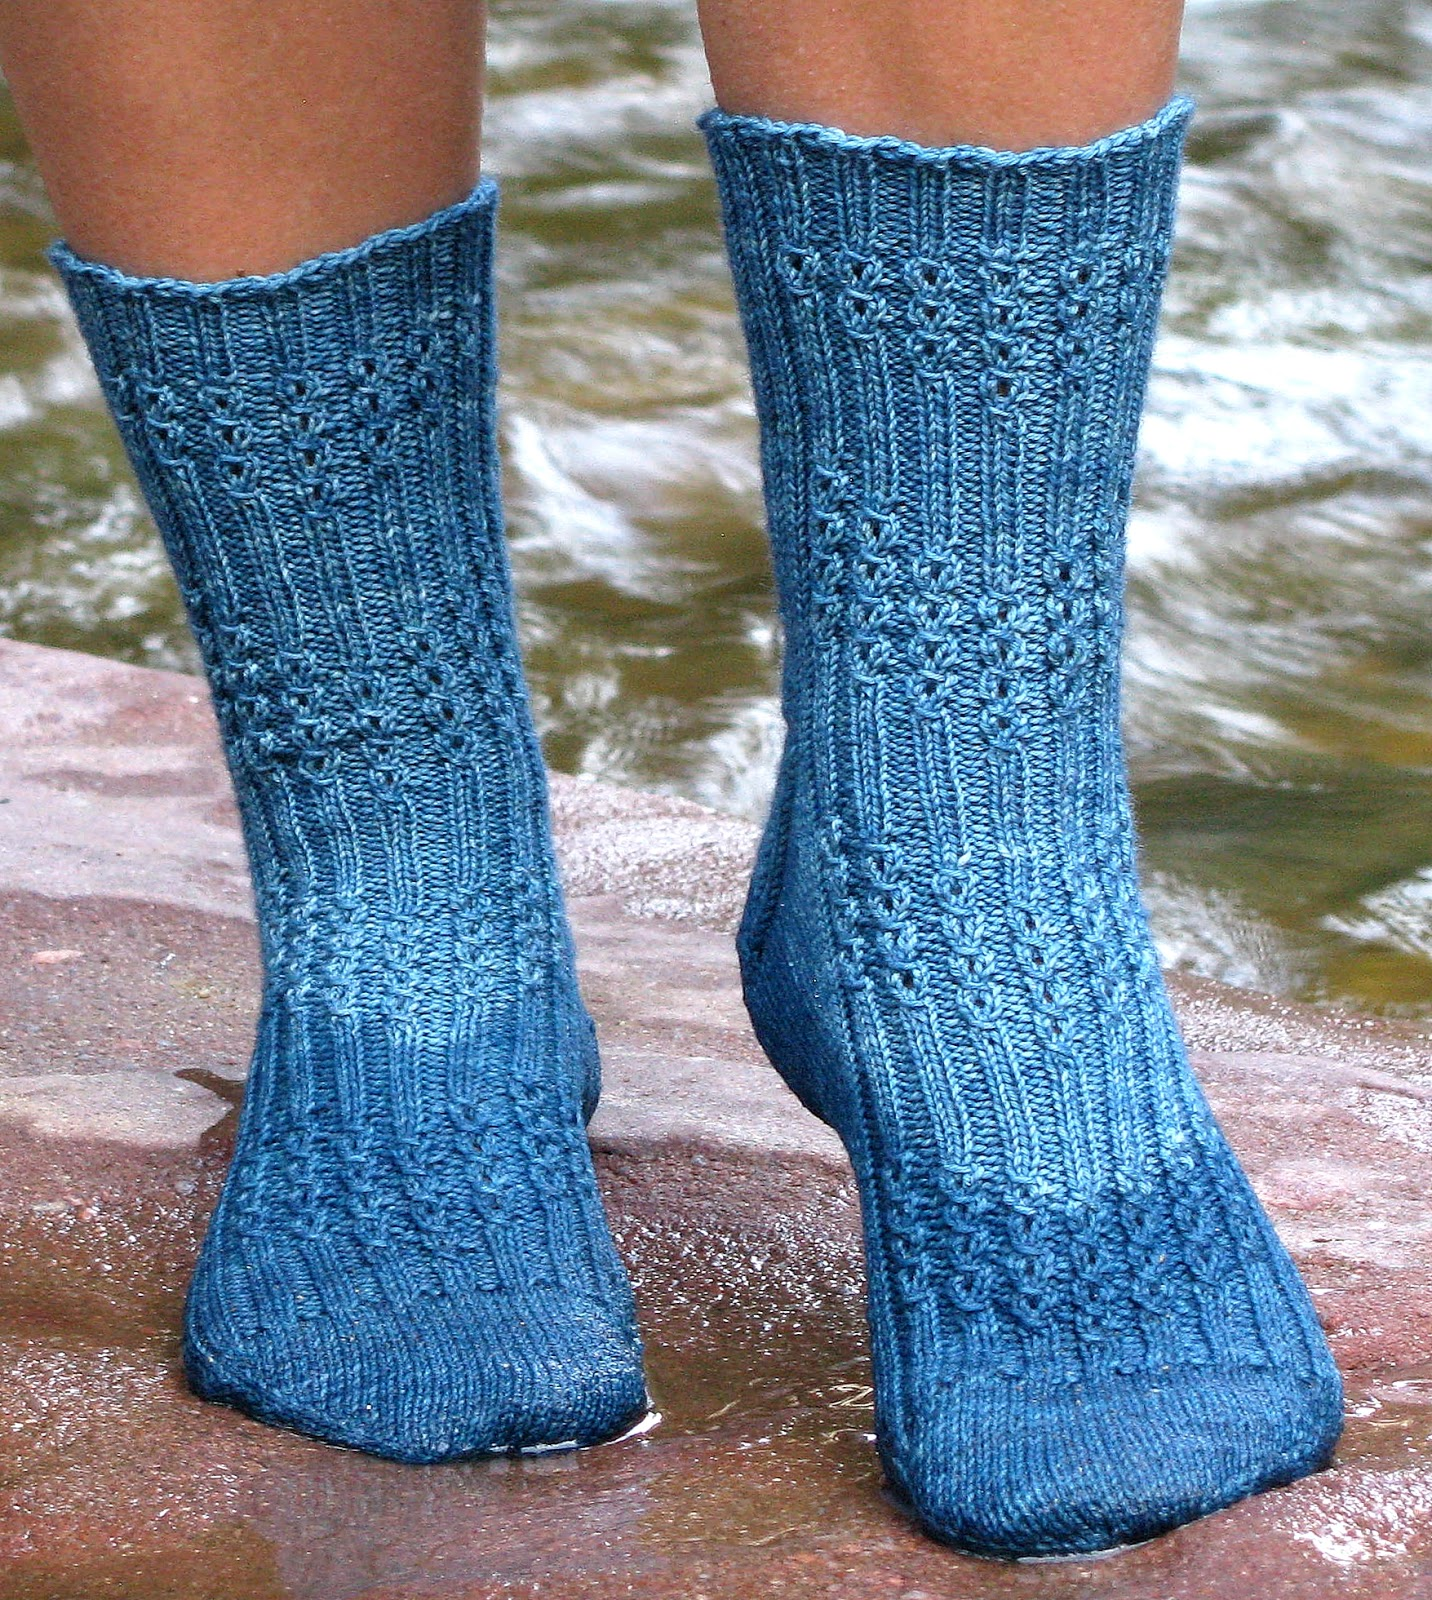 http://www.ravelry.com/patterns/library/riverwalk-socks